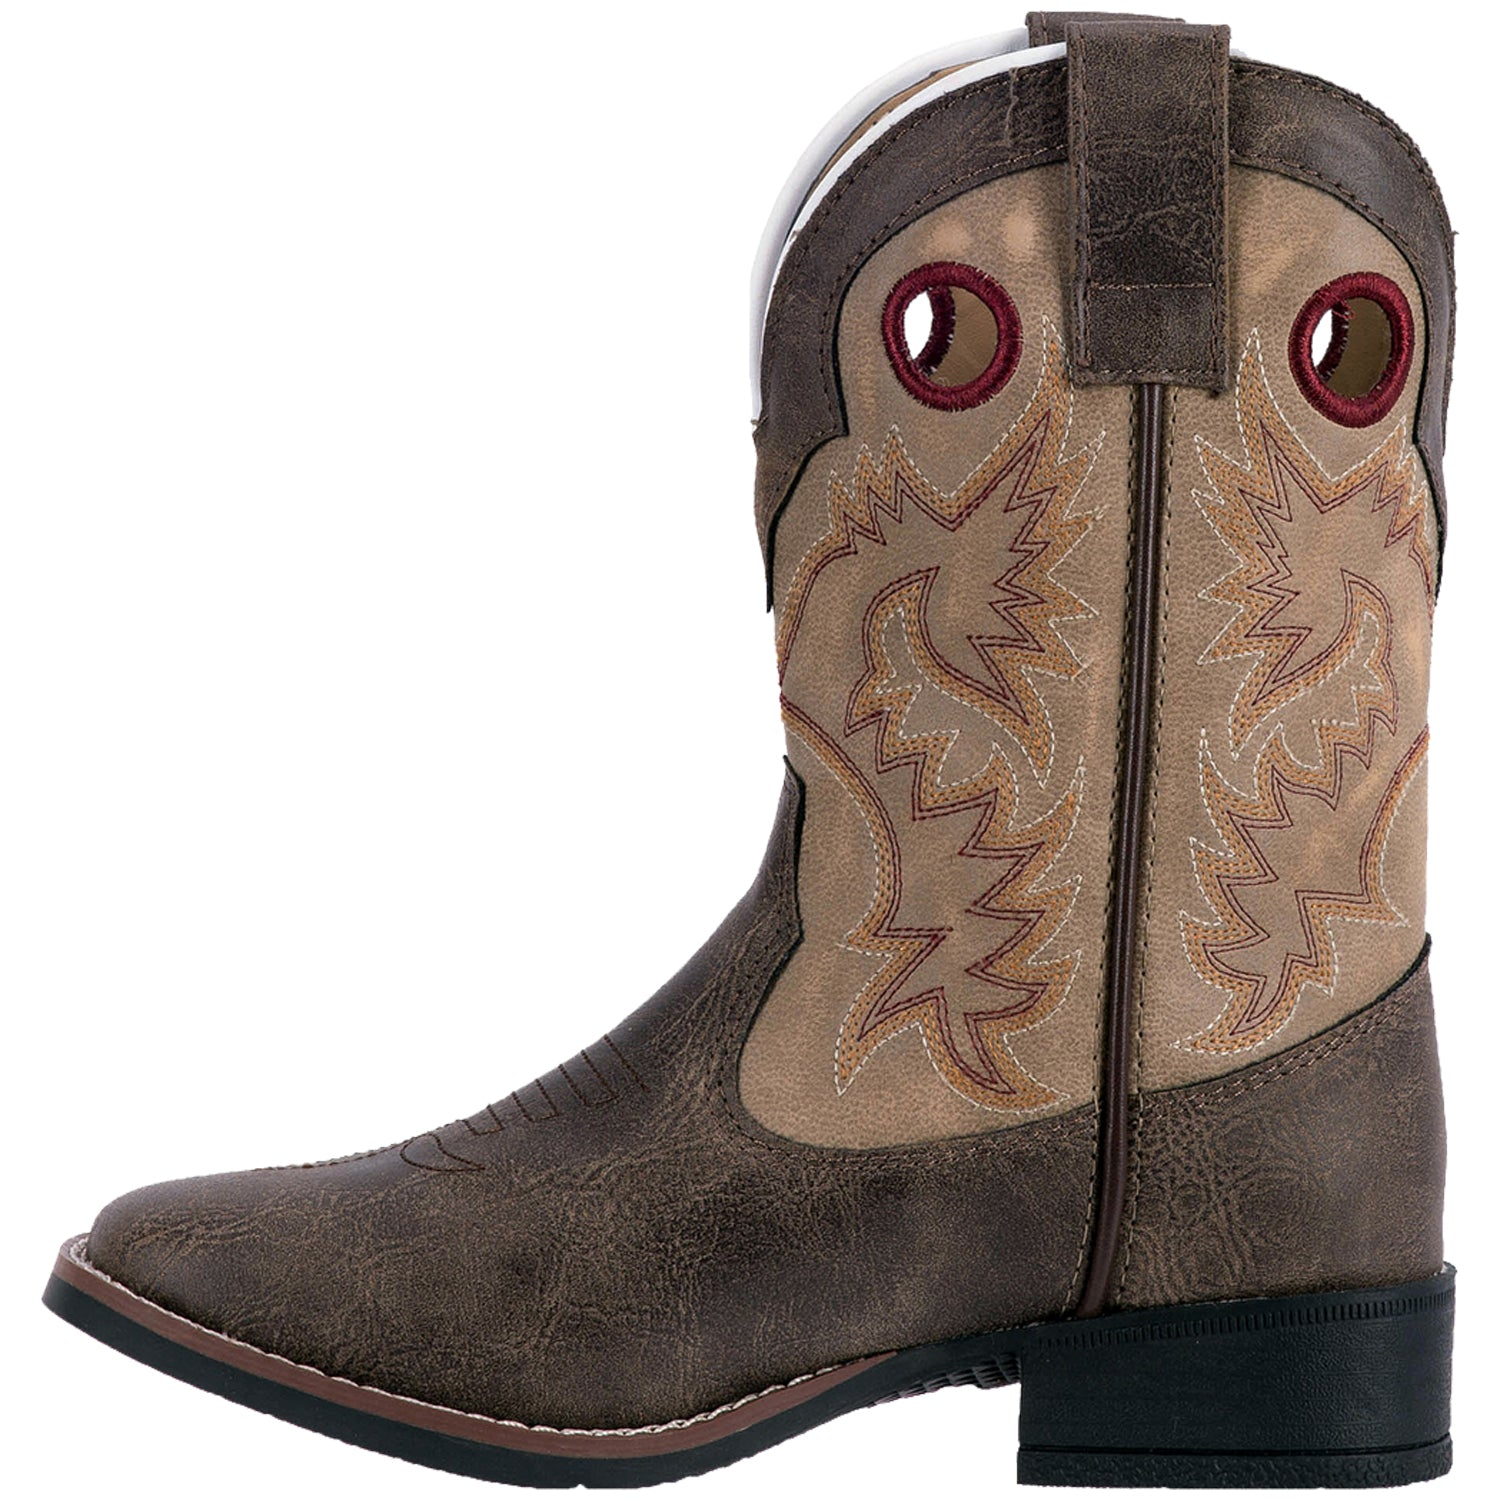 COLLARED CHILDREN'S BOOT 4194465447978